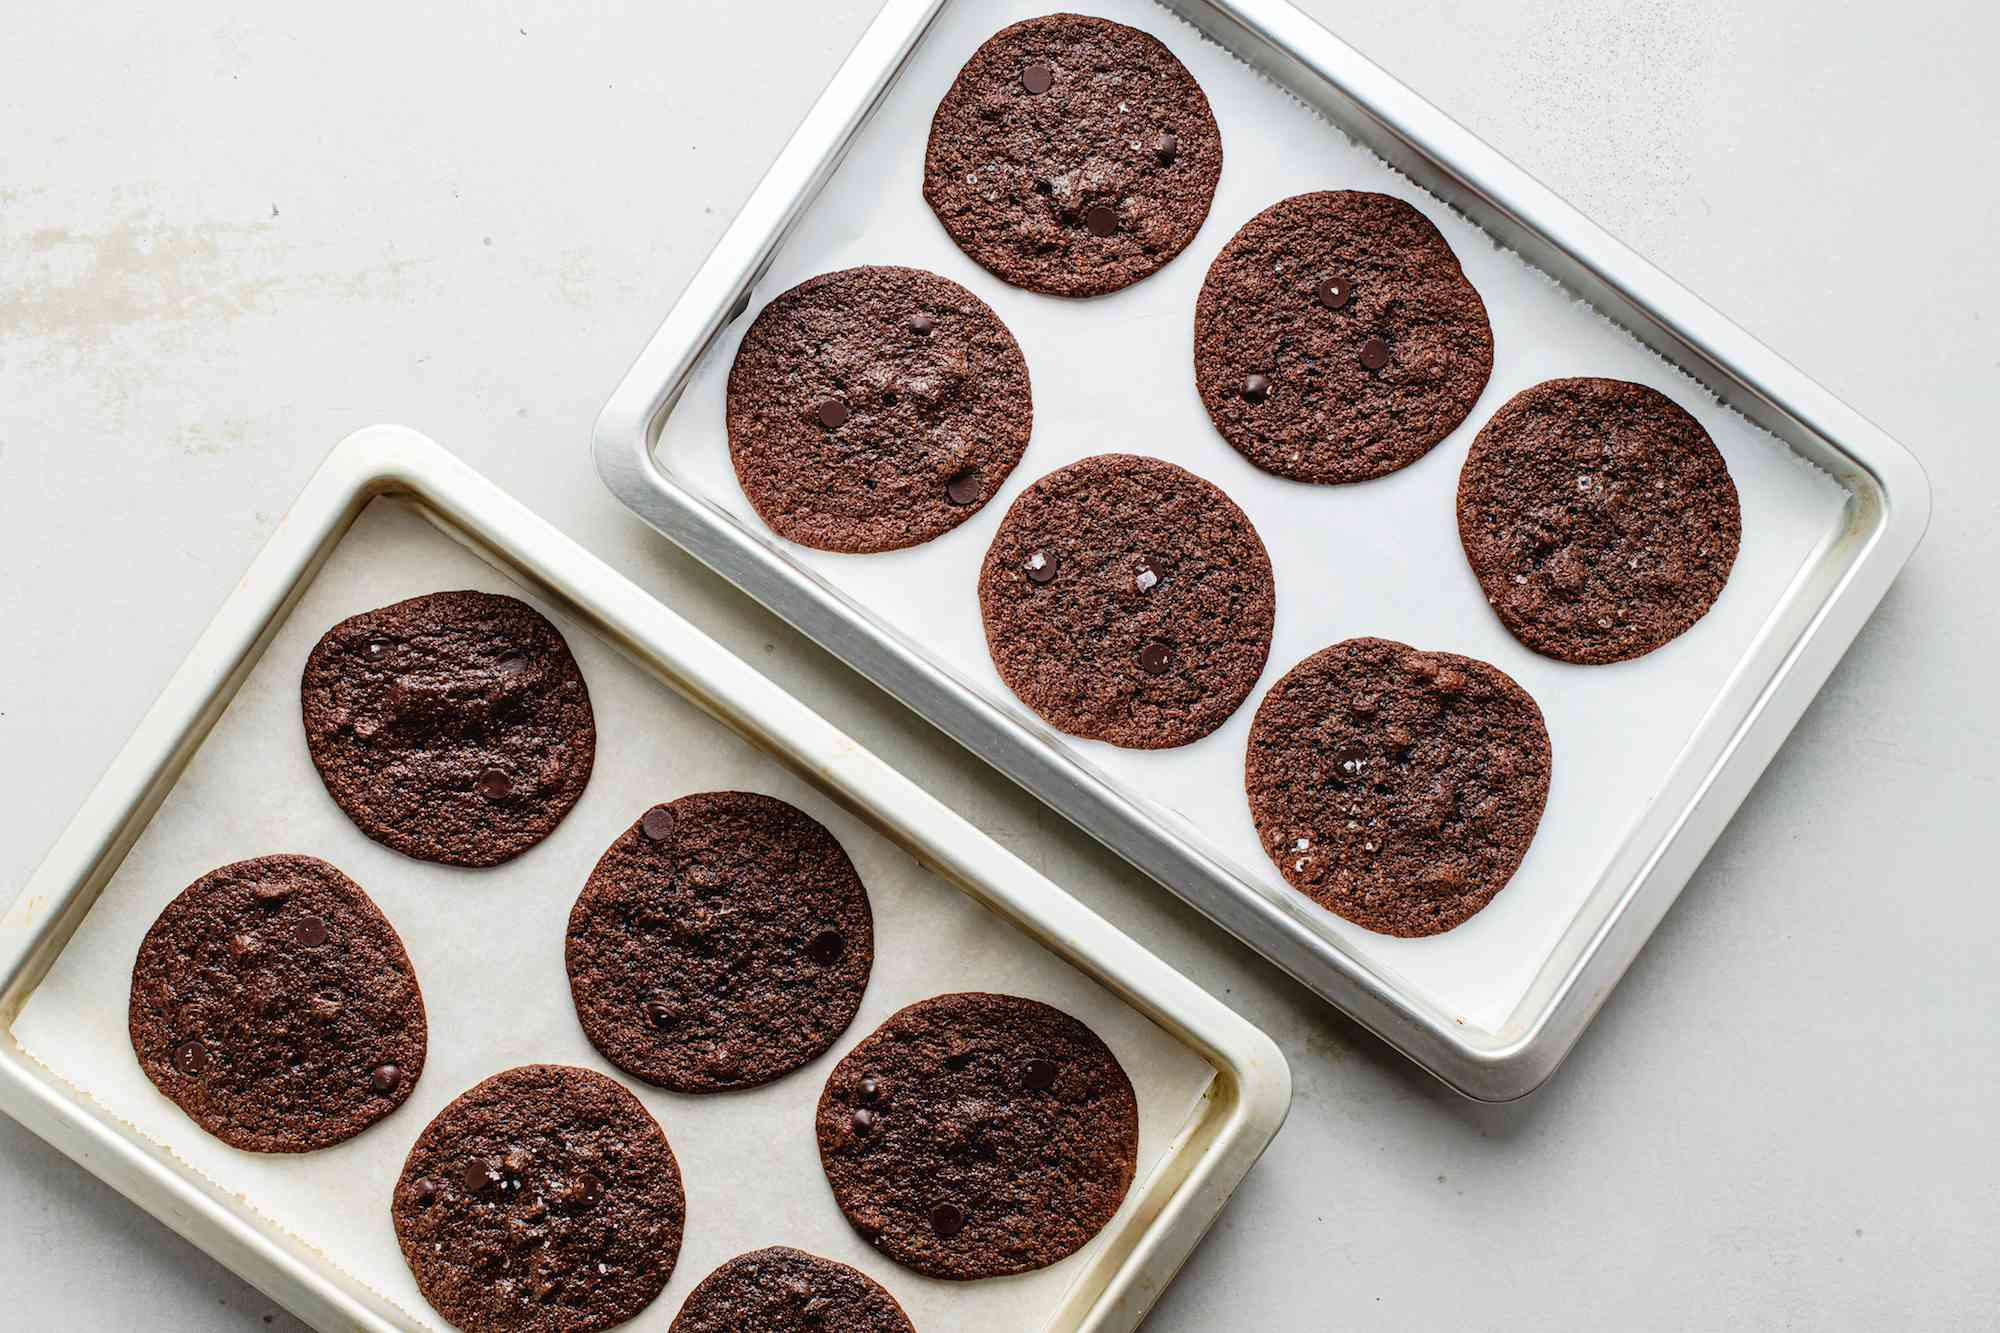 Baked keto chocolate cookies cooling on baking sheets